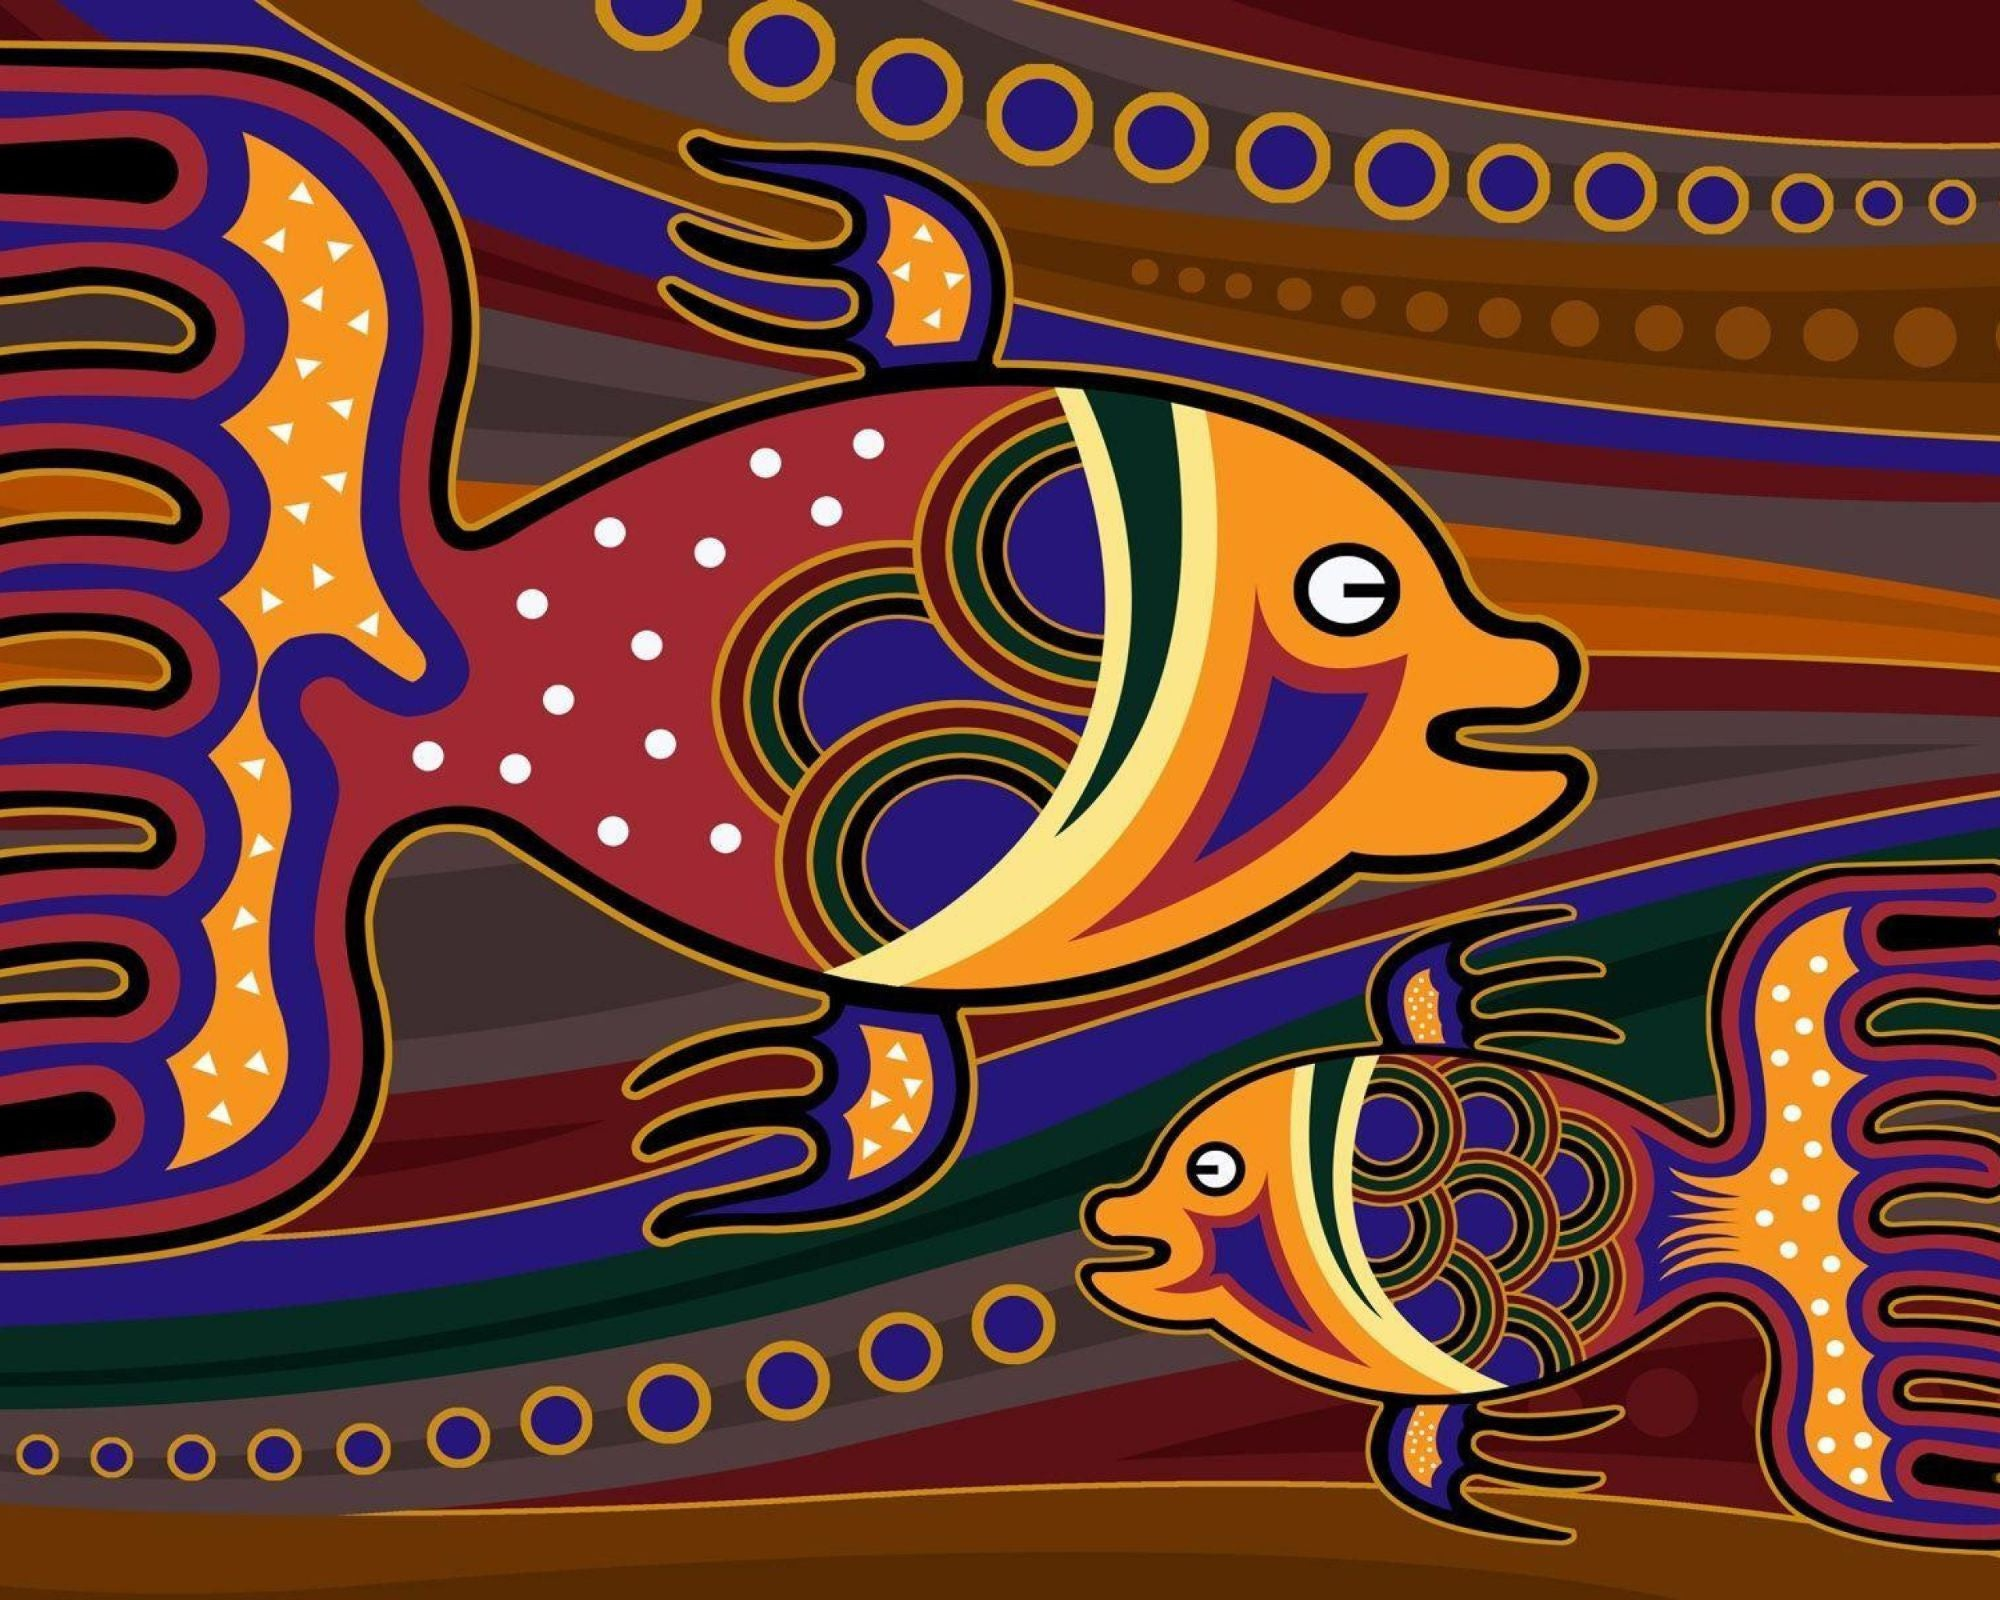 Colorful Fish Art - Posters by Hamid Raza   Buy Posters, Frames ...